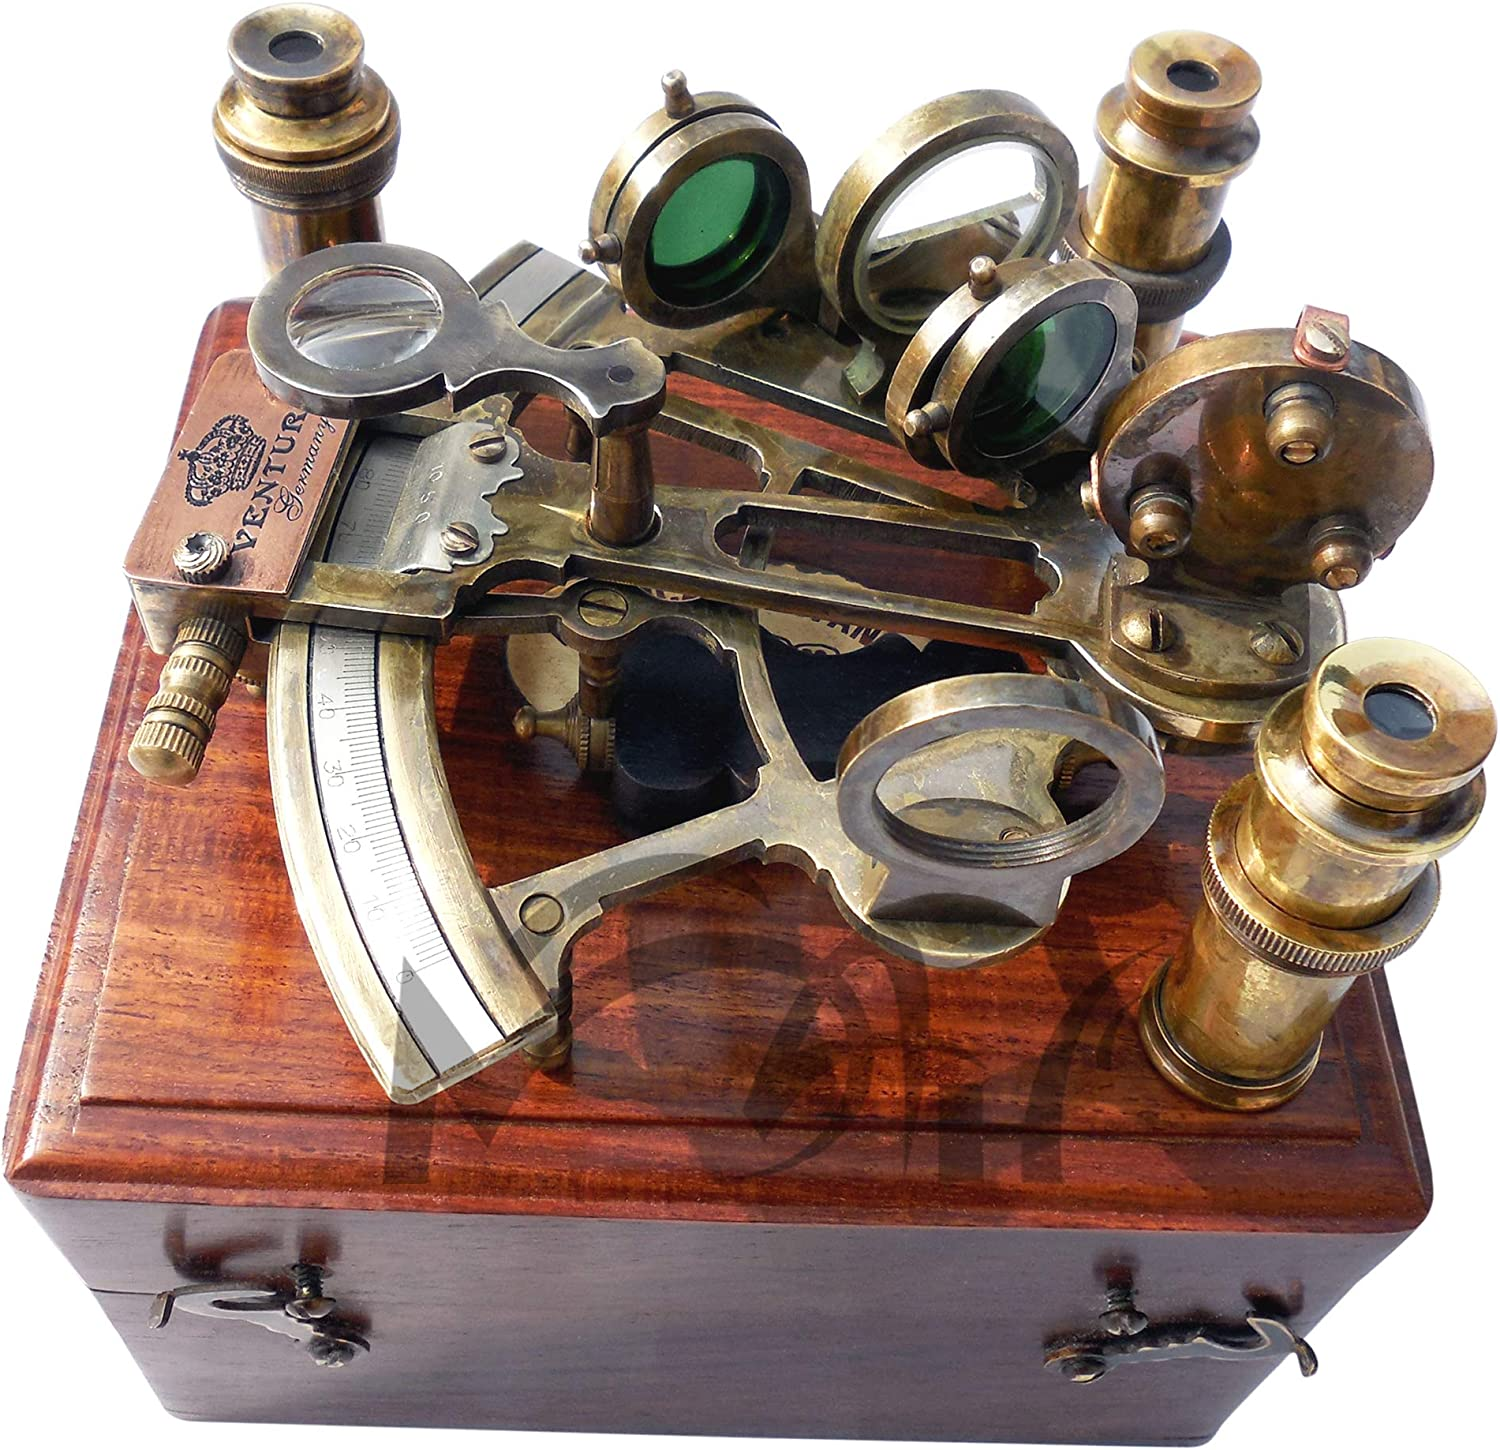 ANTIQUE BRASS GERMAN ASTROLABE NAUTICAL MARINE SEXTANT /& COLLECTIBLE WOODEN BOX